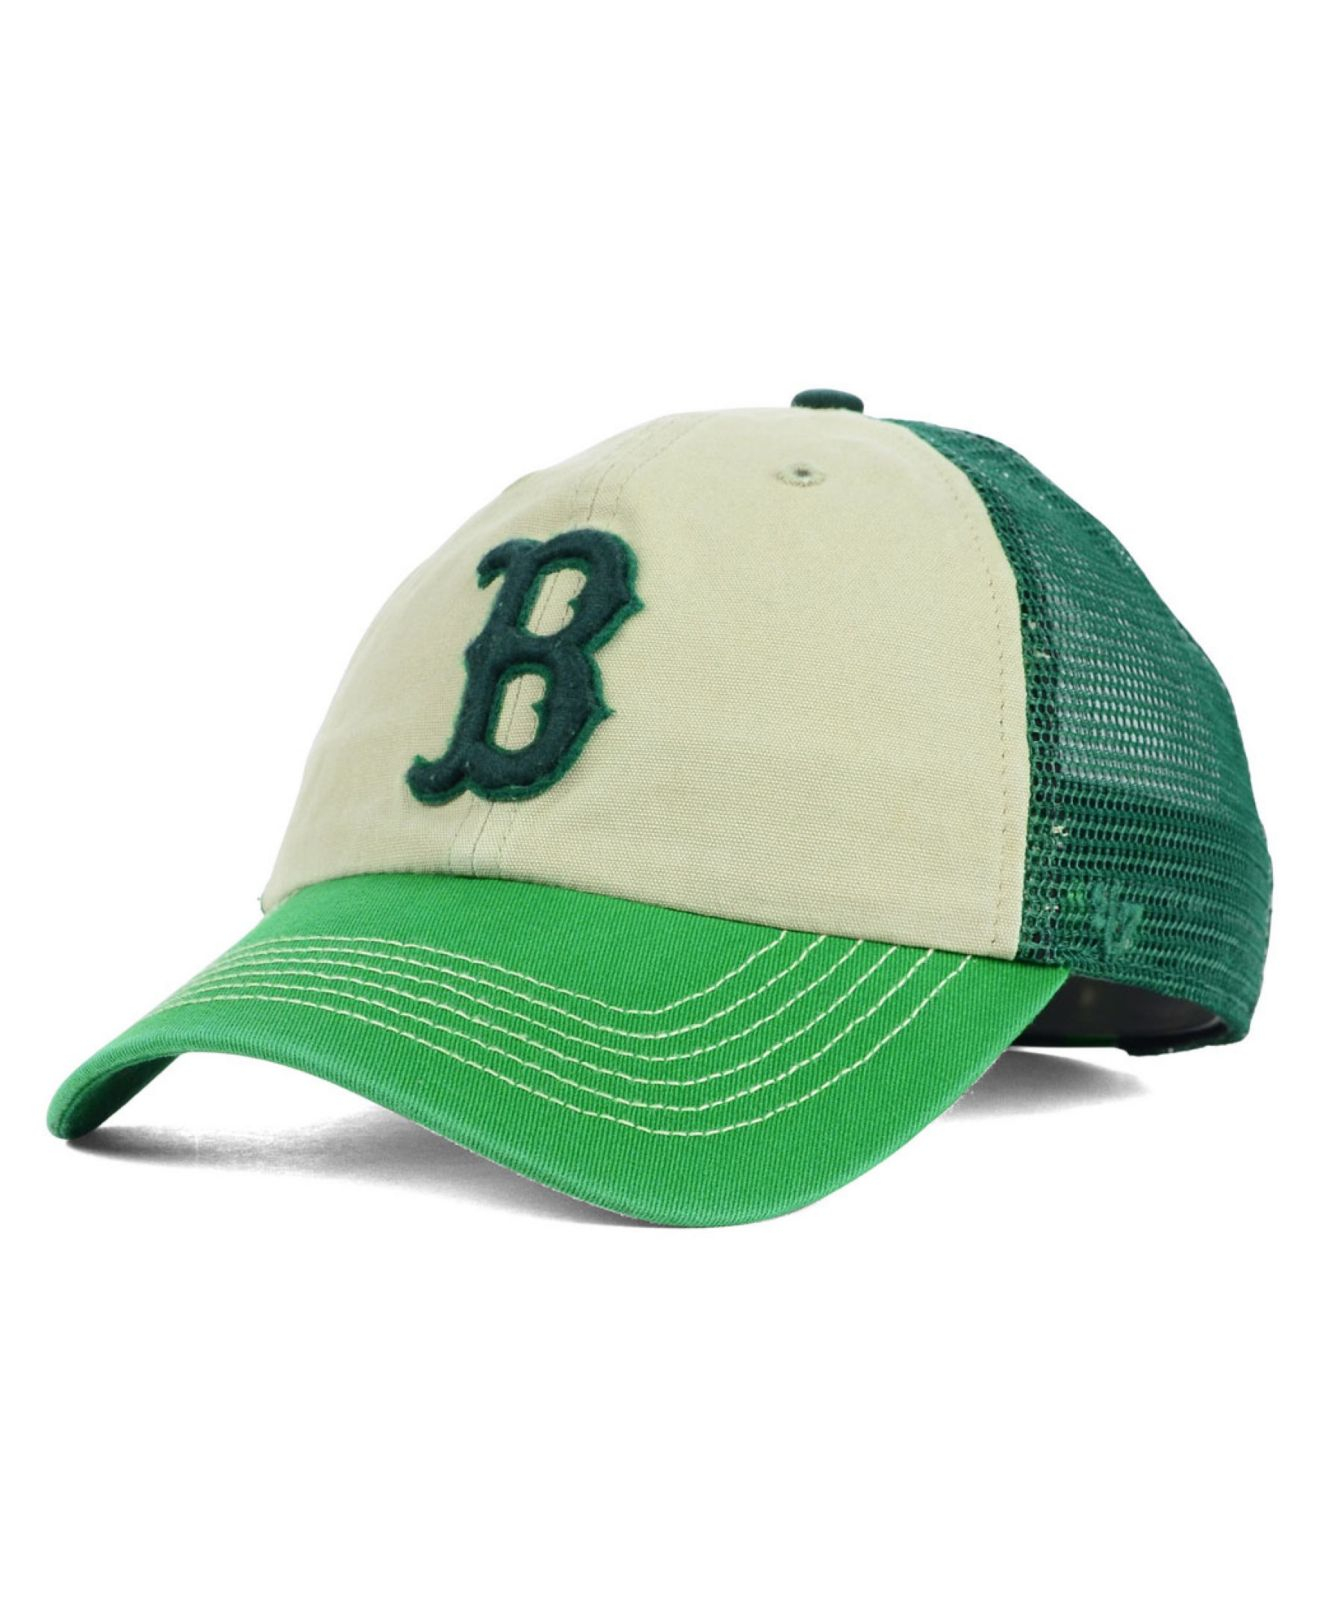 buy online 36482 fb237 ... where can i buy lyst 47 brand boston red sox mcnally clean up cap in  green